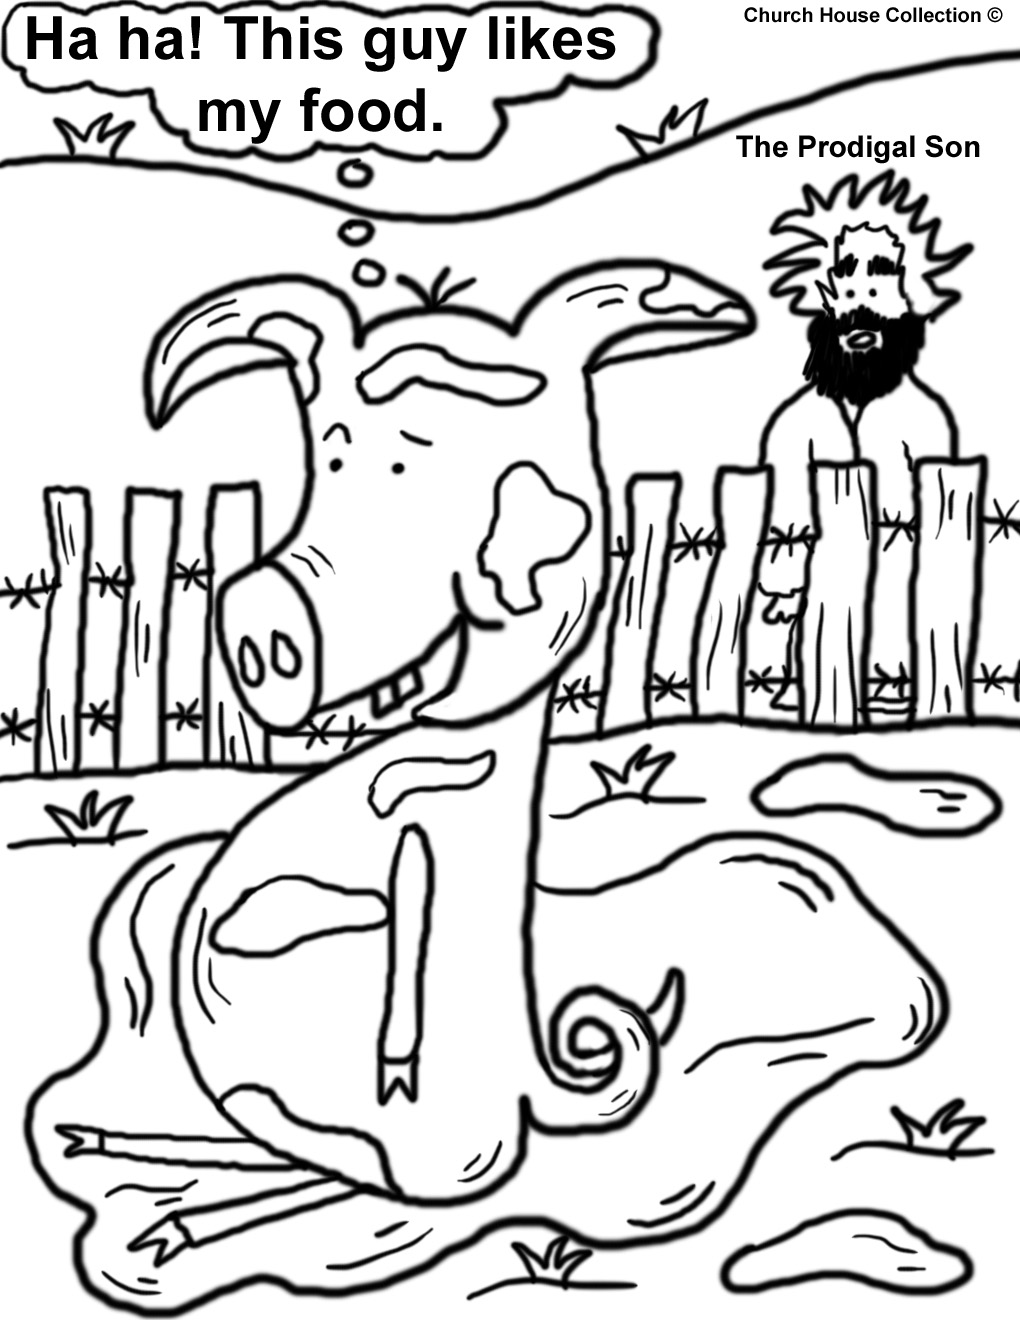 Church House Collection Blog Prodigal Son Coloring Sheet